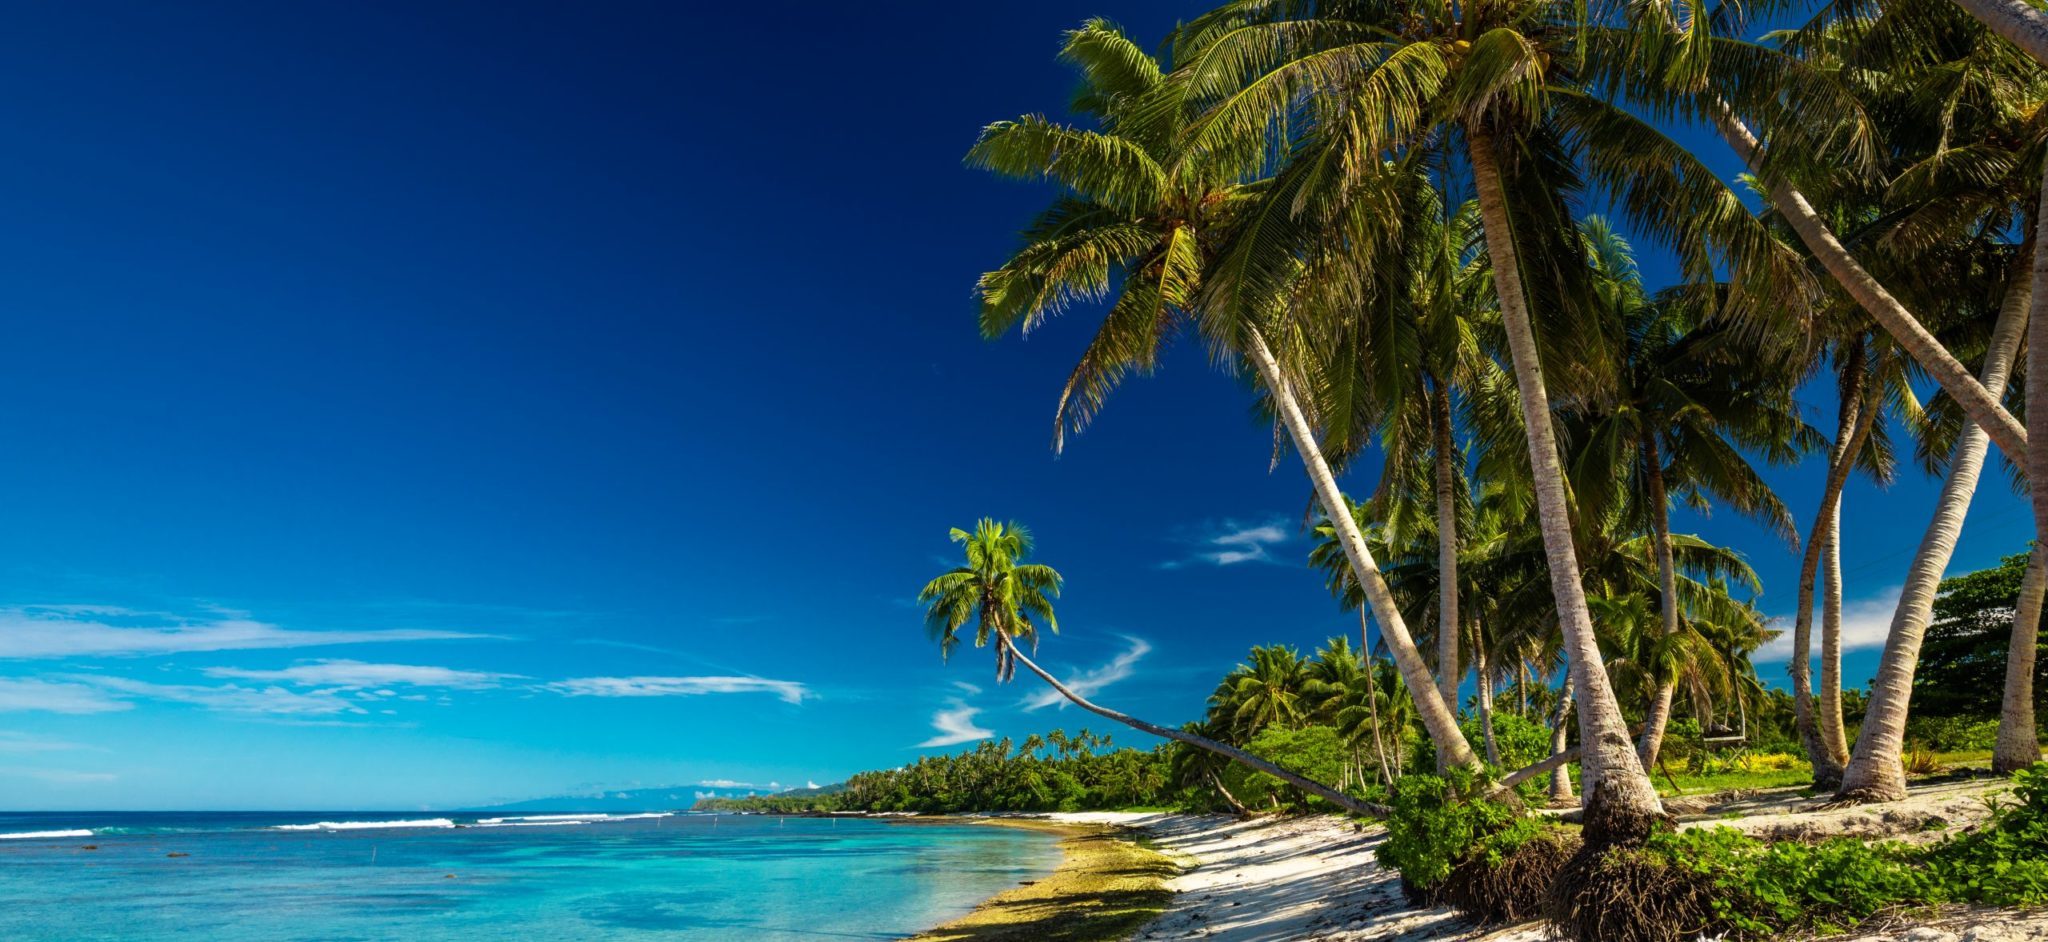 Beach with coral reef on south side of Upolu framed by palm leaves, Samoa Islands